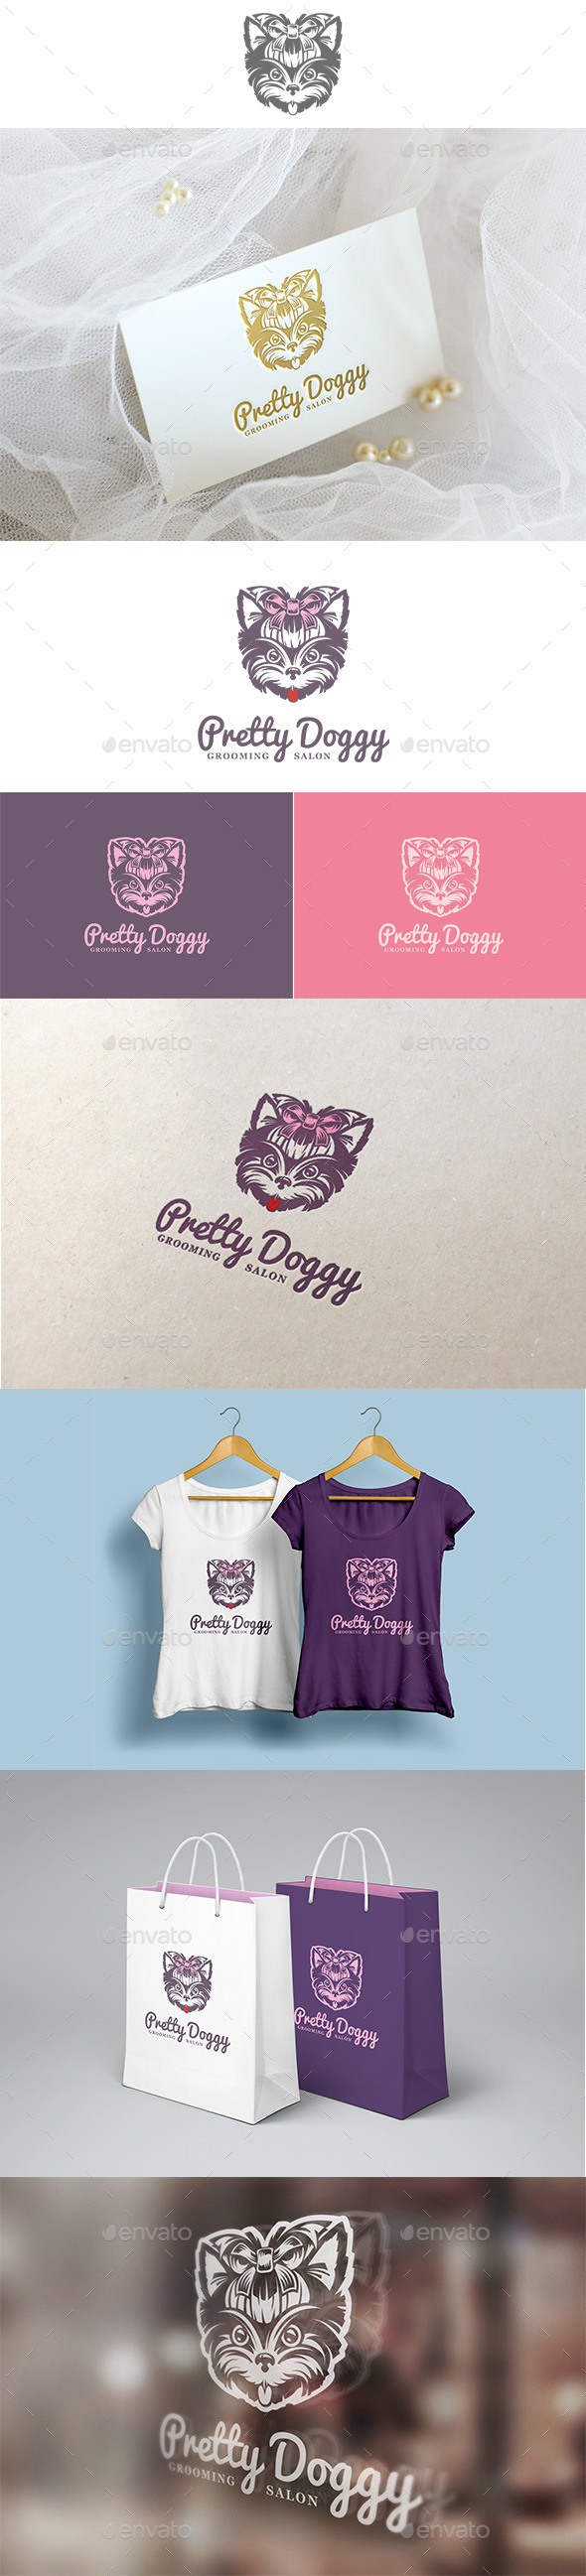 Pretty Doggy Logo - Animals Logo Templates